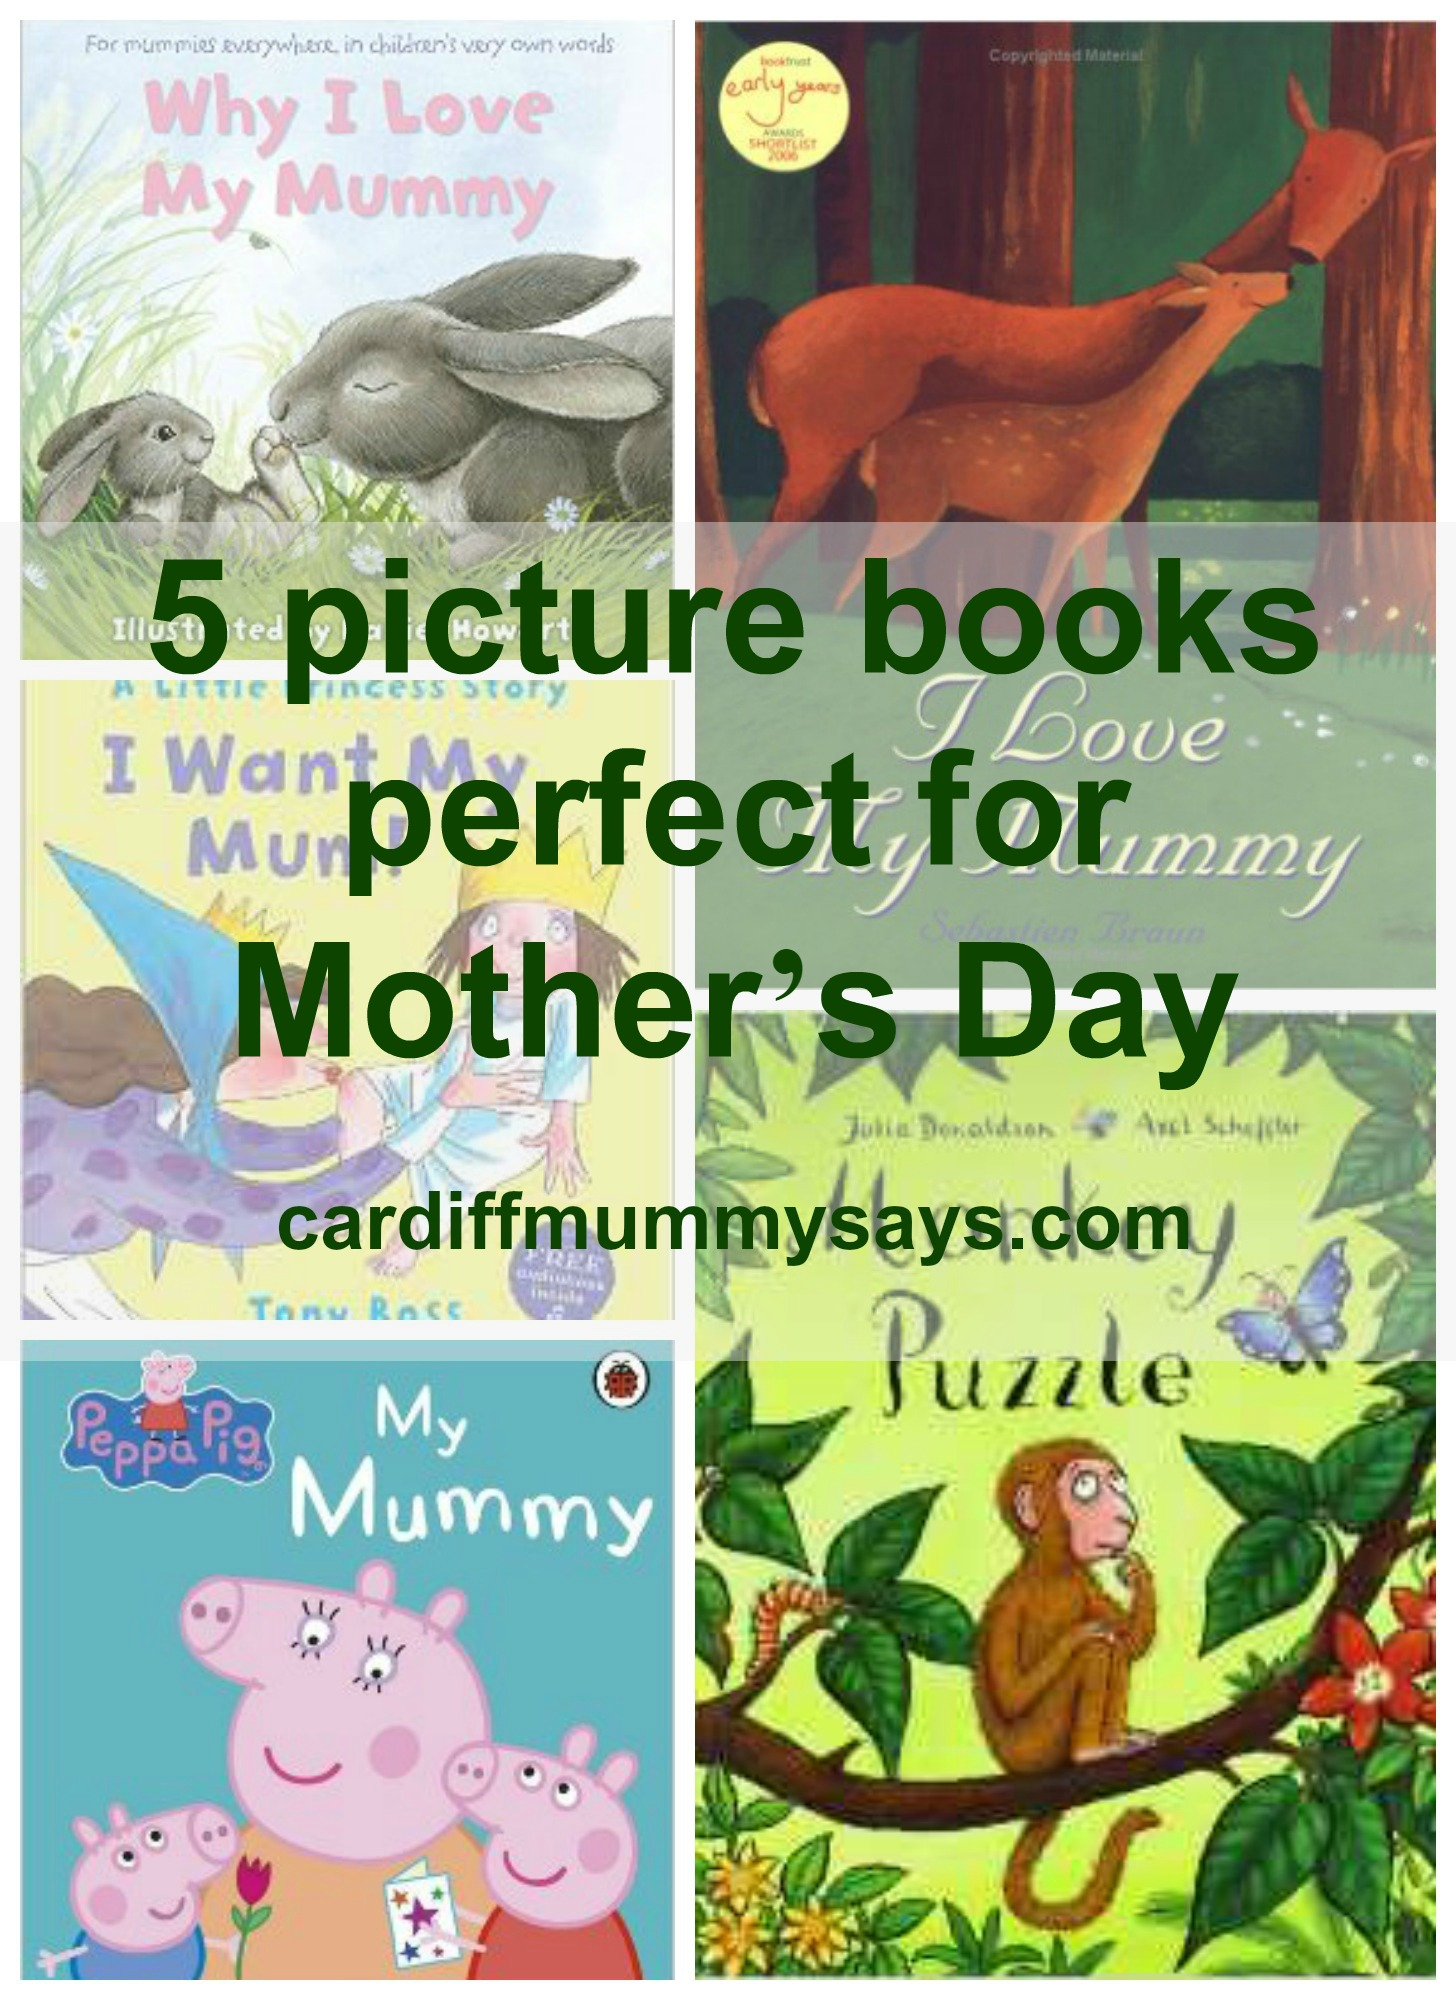 Mummy Books collage 1 with text